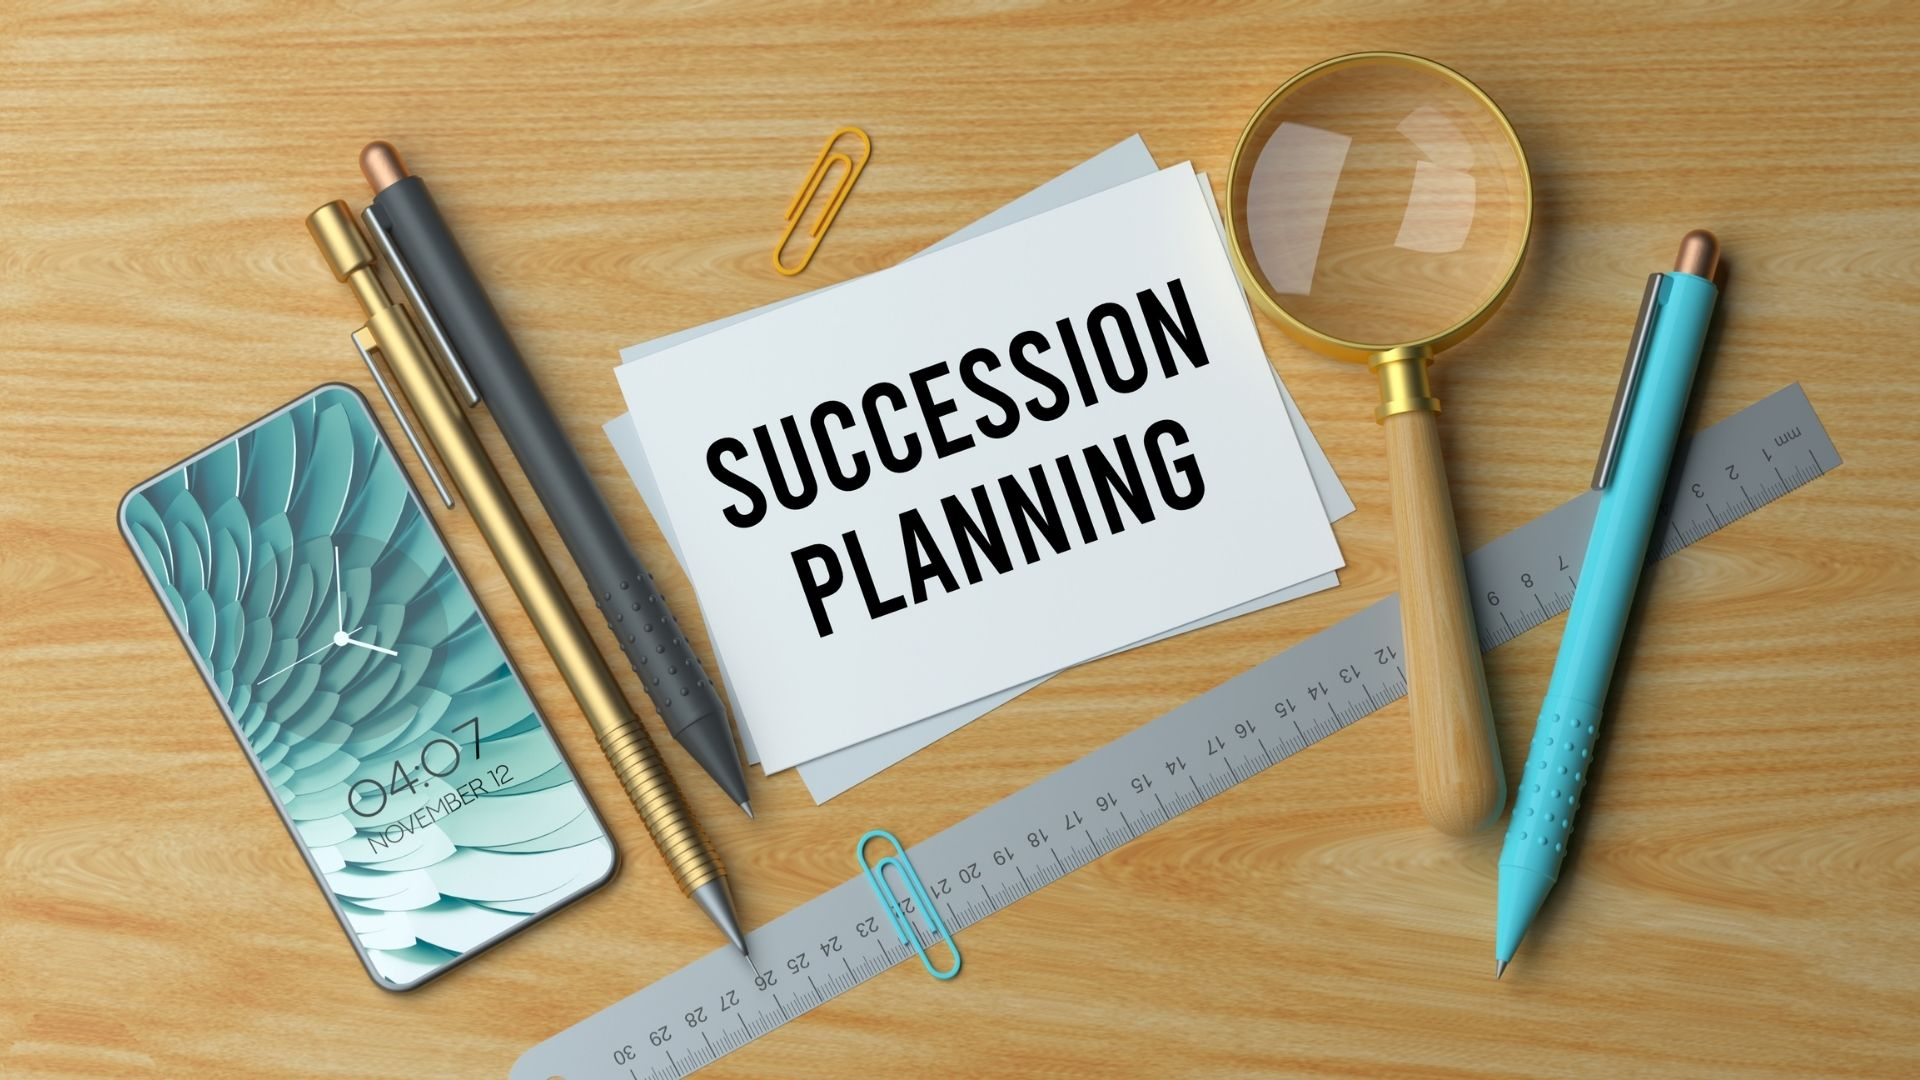 How to support clients with complex successionplanning